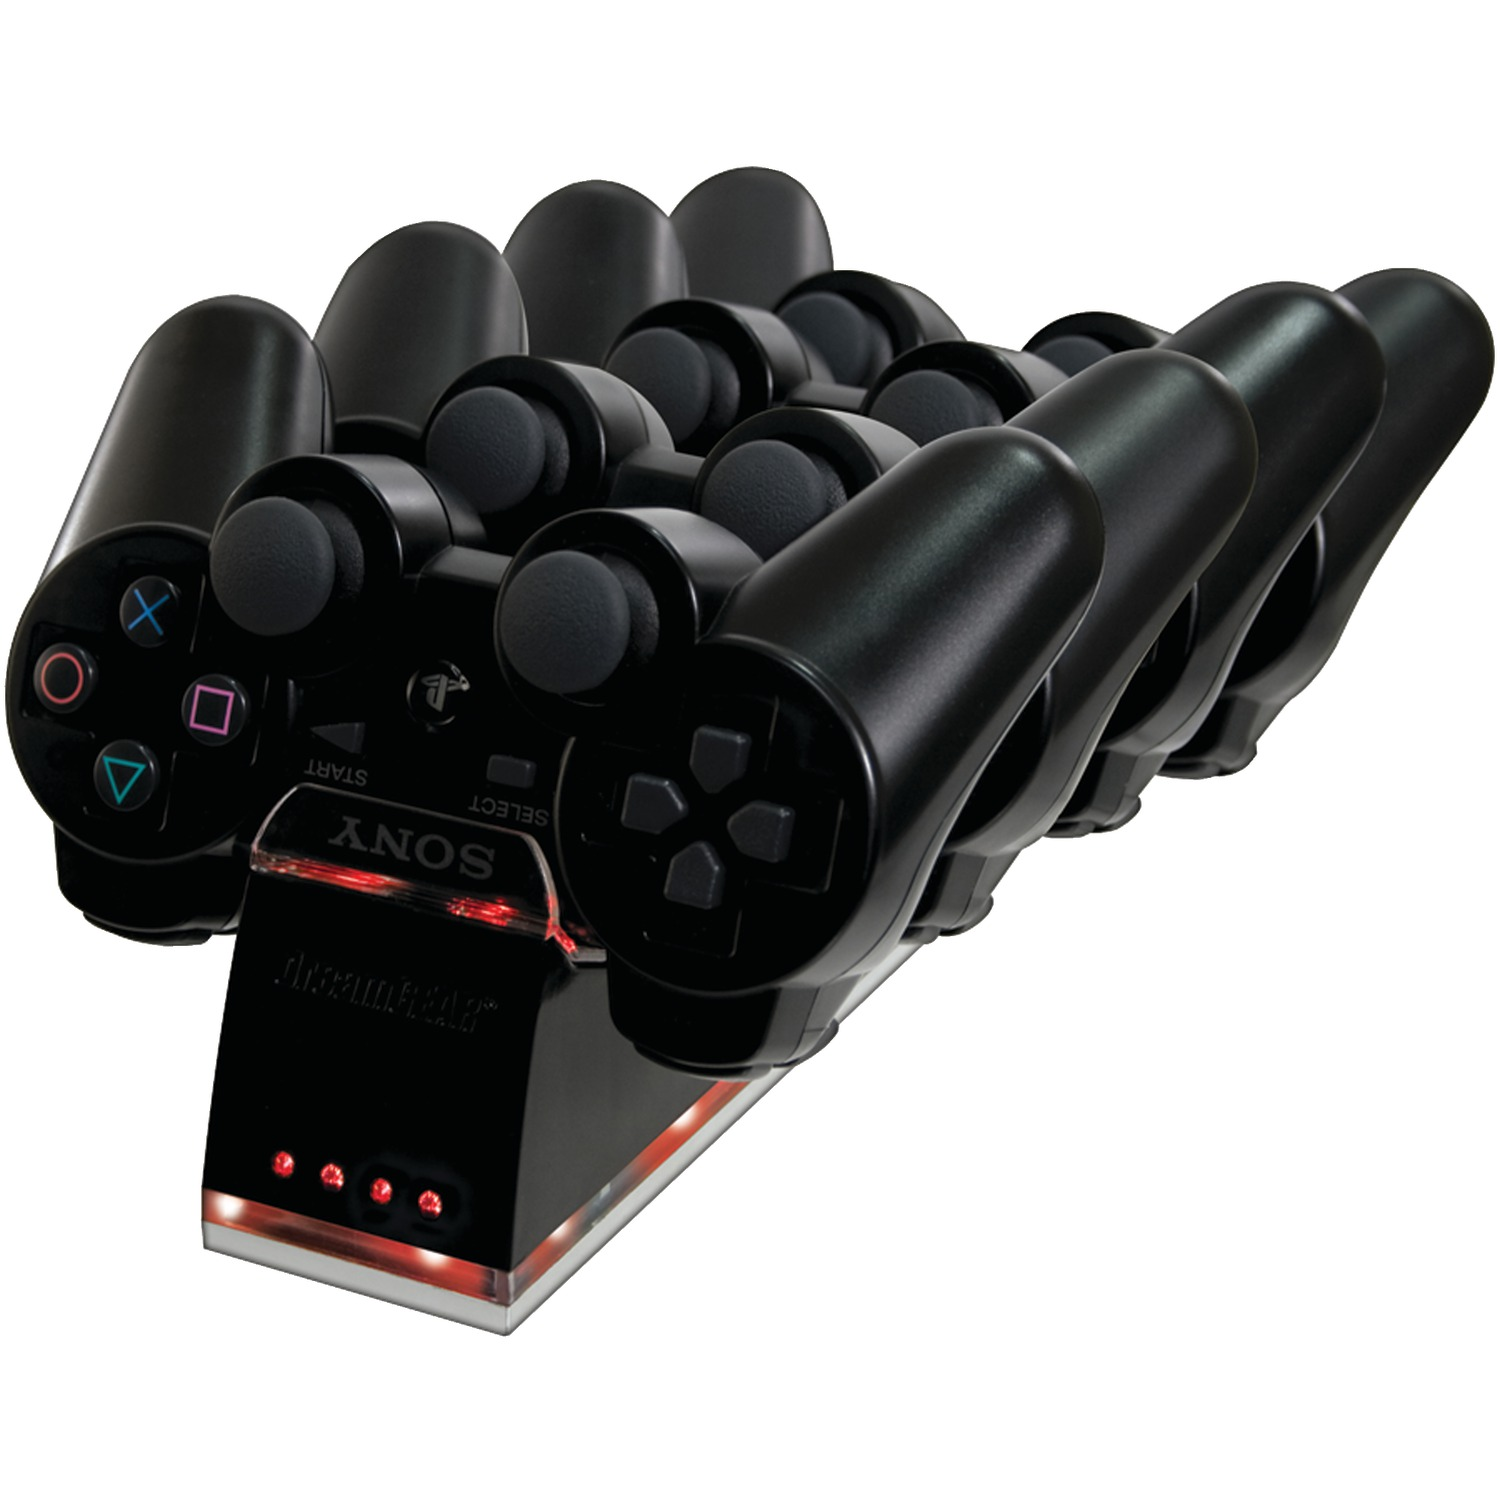 Dreamgear DGPS3-1339 Playstation3 Quad Charging Dock